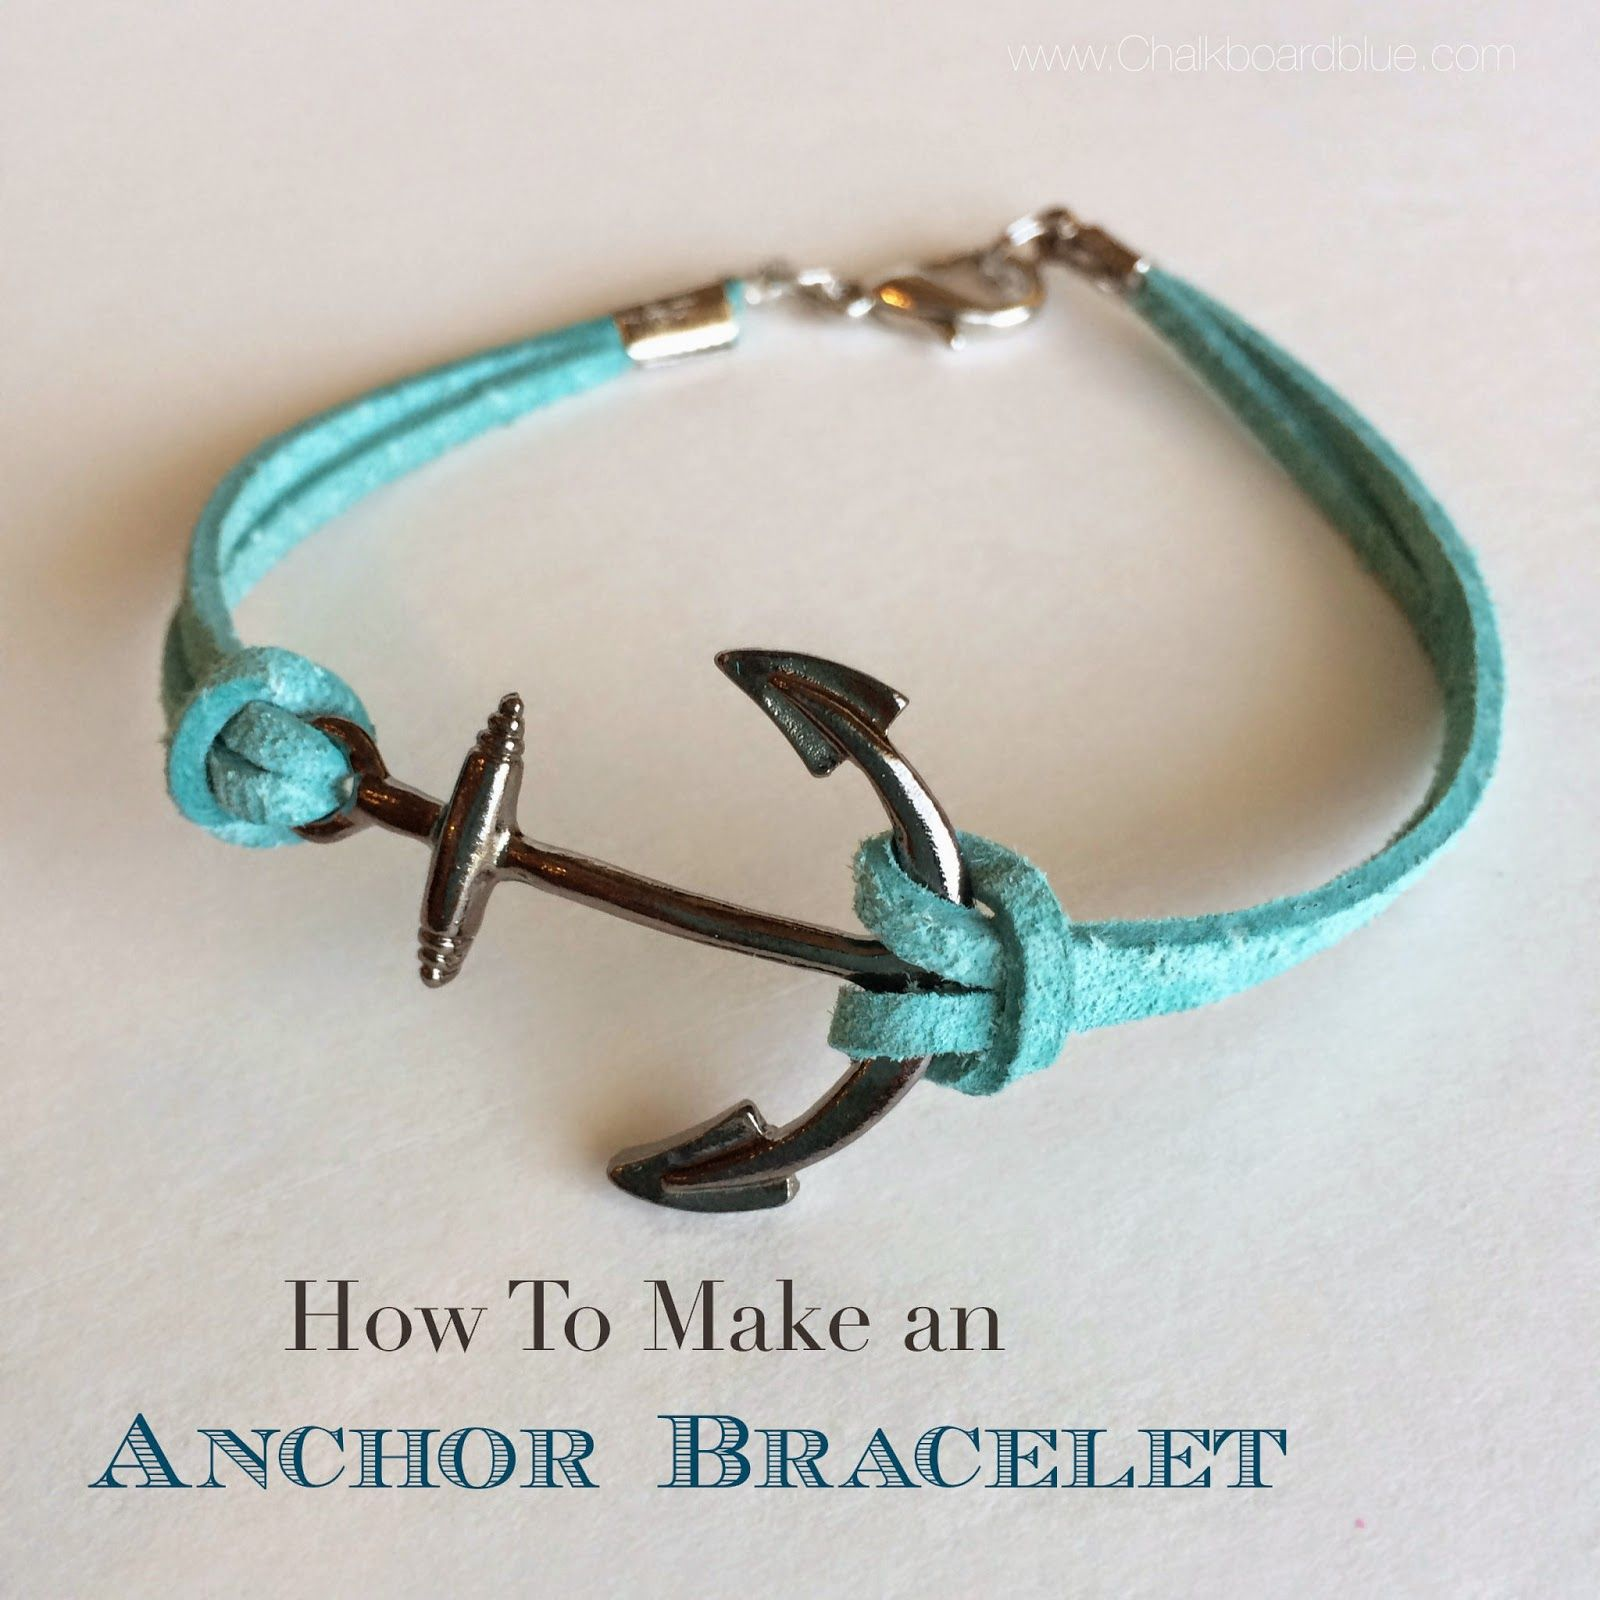 How to make an anchor charm bracelet alkboardblue